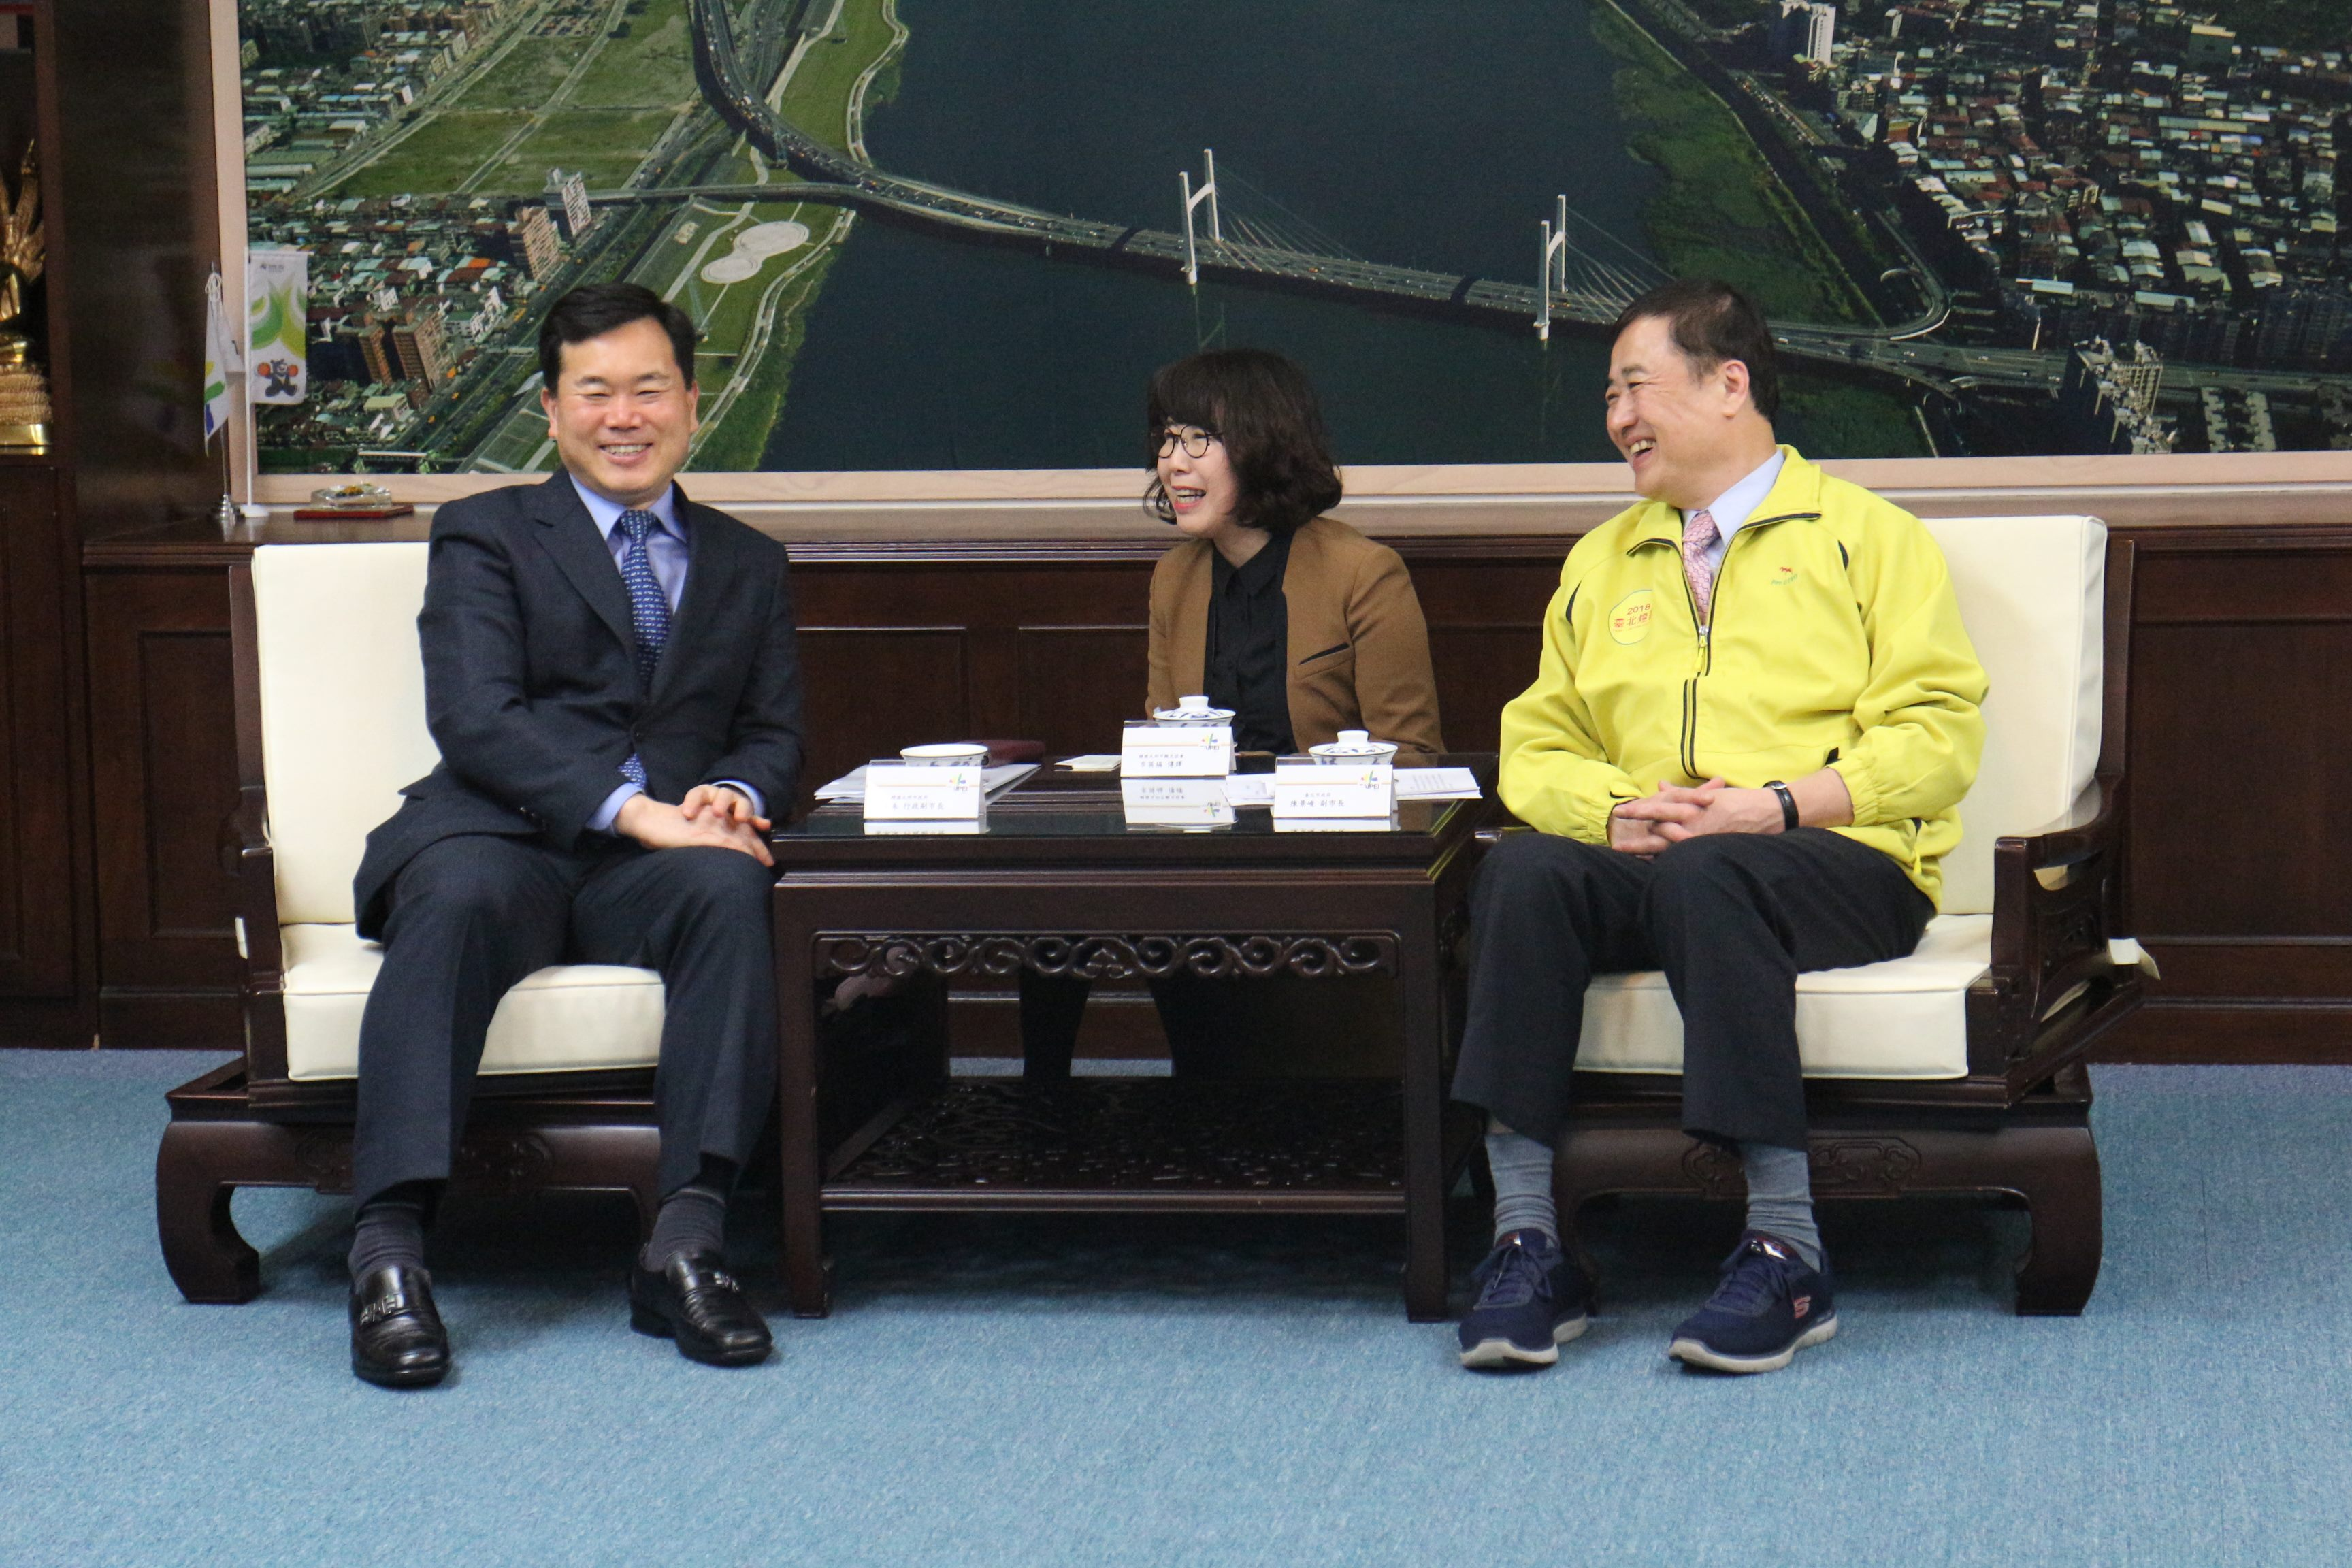 Delegates from Kim Seung Soo, Deputy Mayor of Daegu City, Korea, pay a courtesy call to Deputy Mayor Chen.